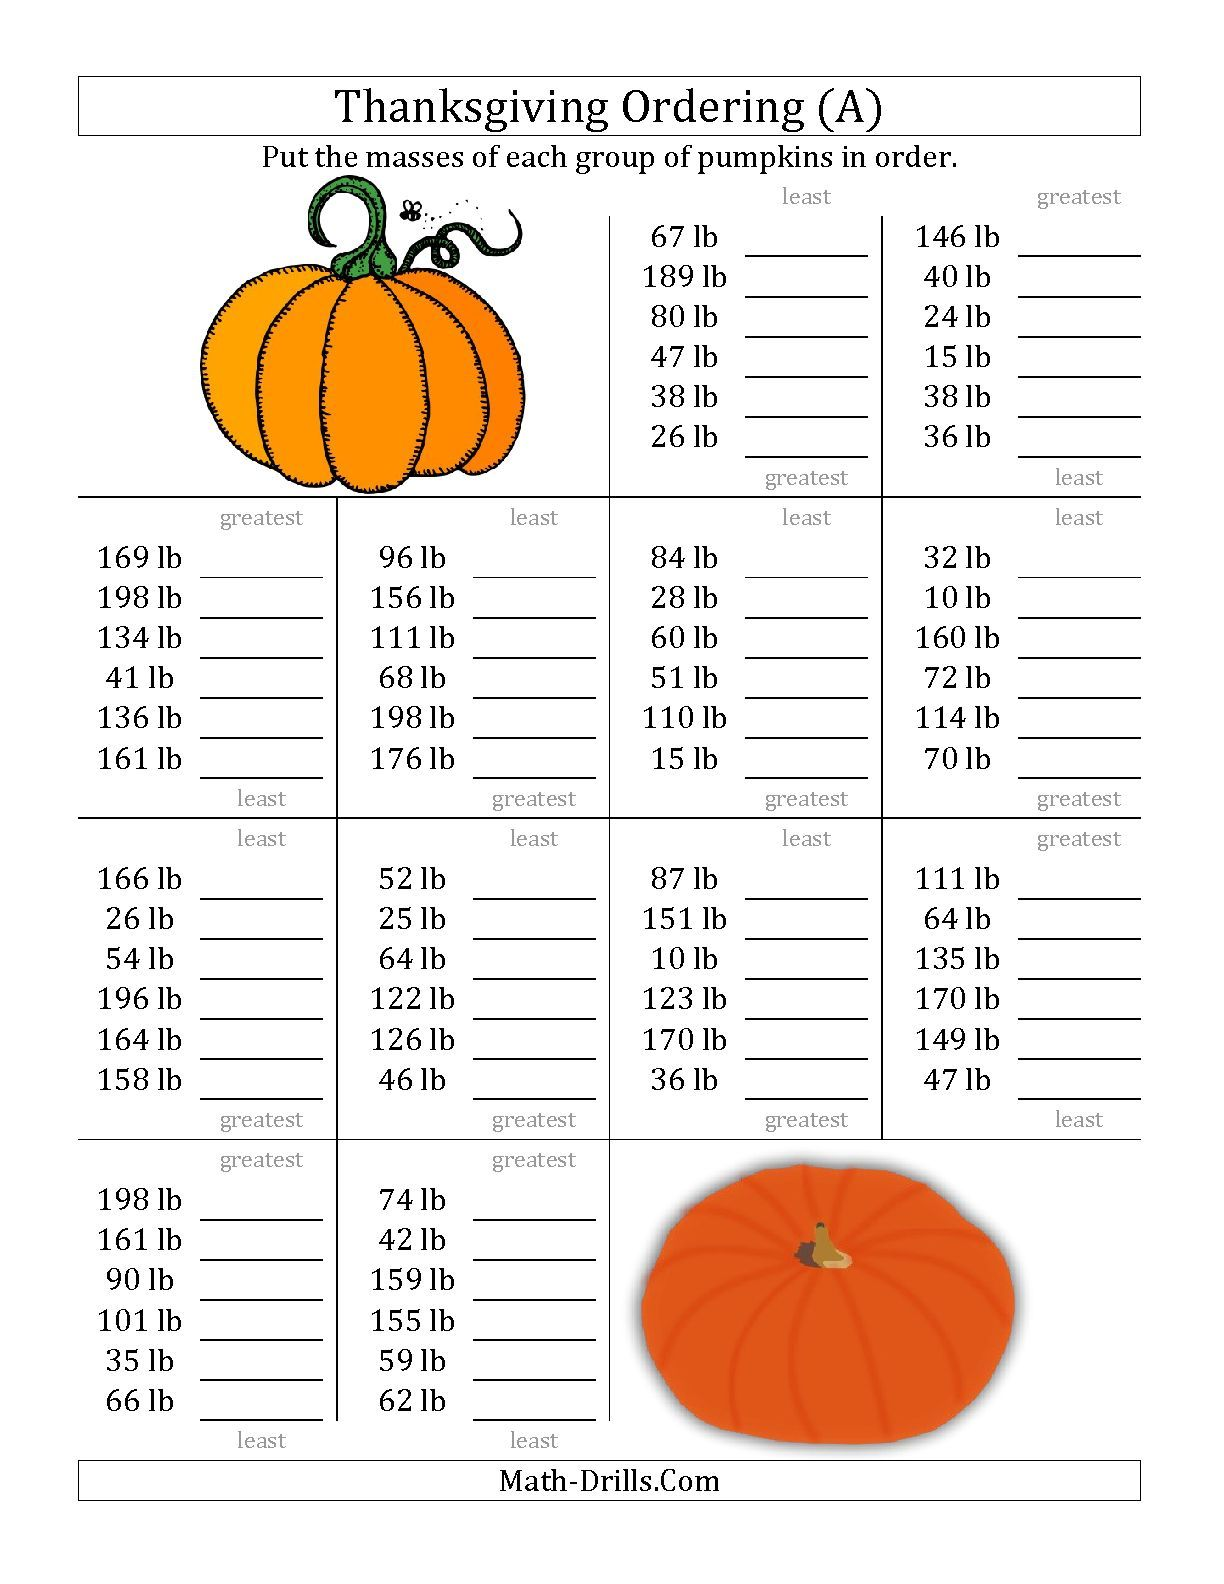 The Ordering Pumpkin Masses In Pounds A Math Worksheet